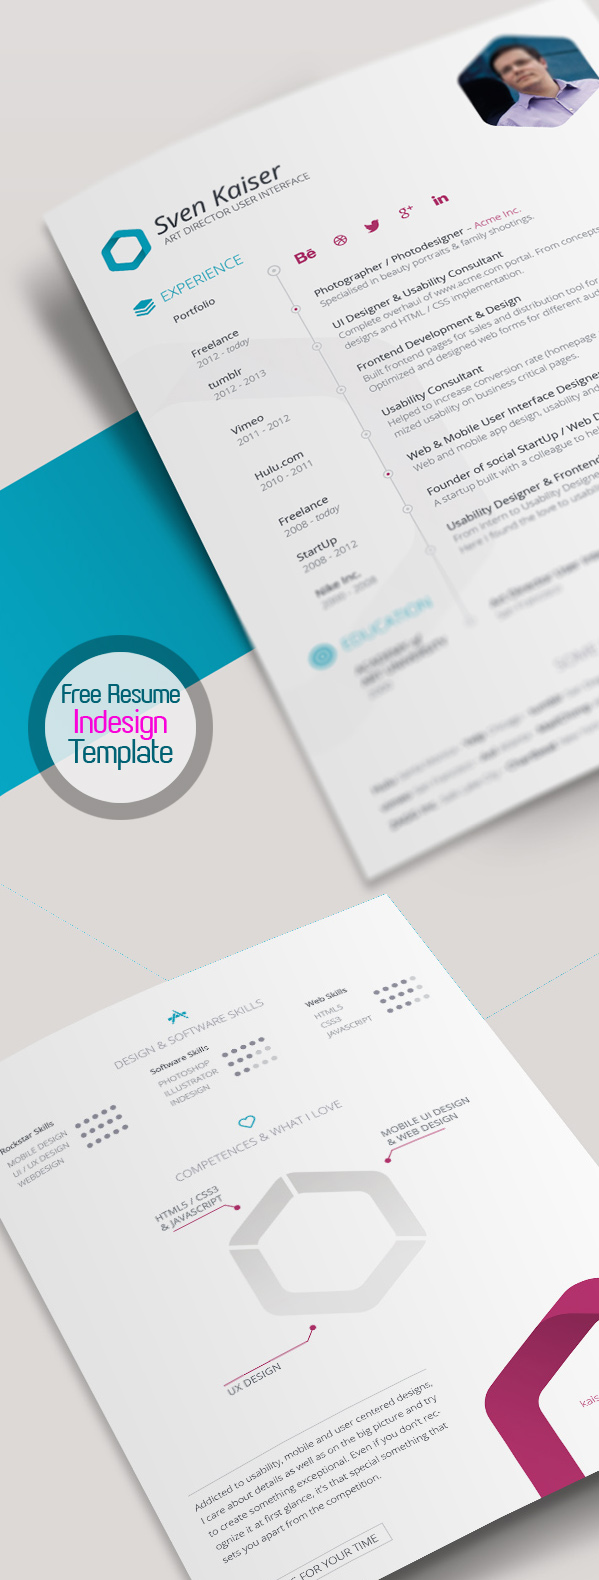 free resume template for indesign vita cv